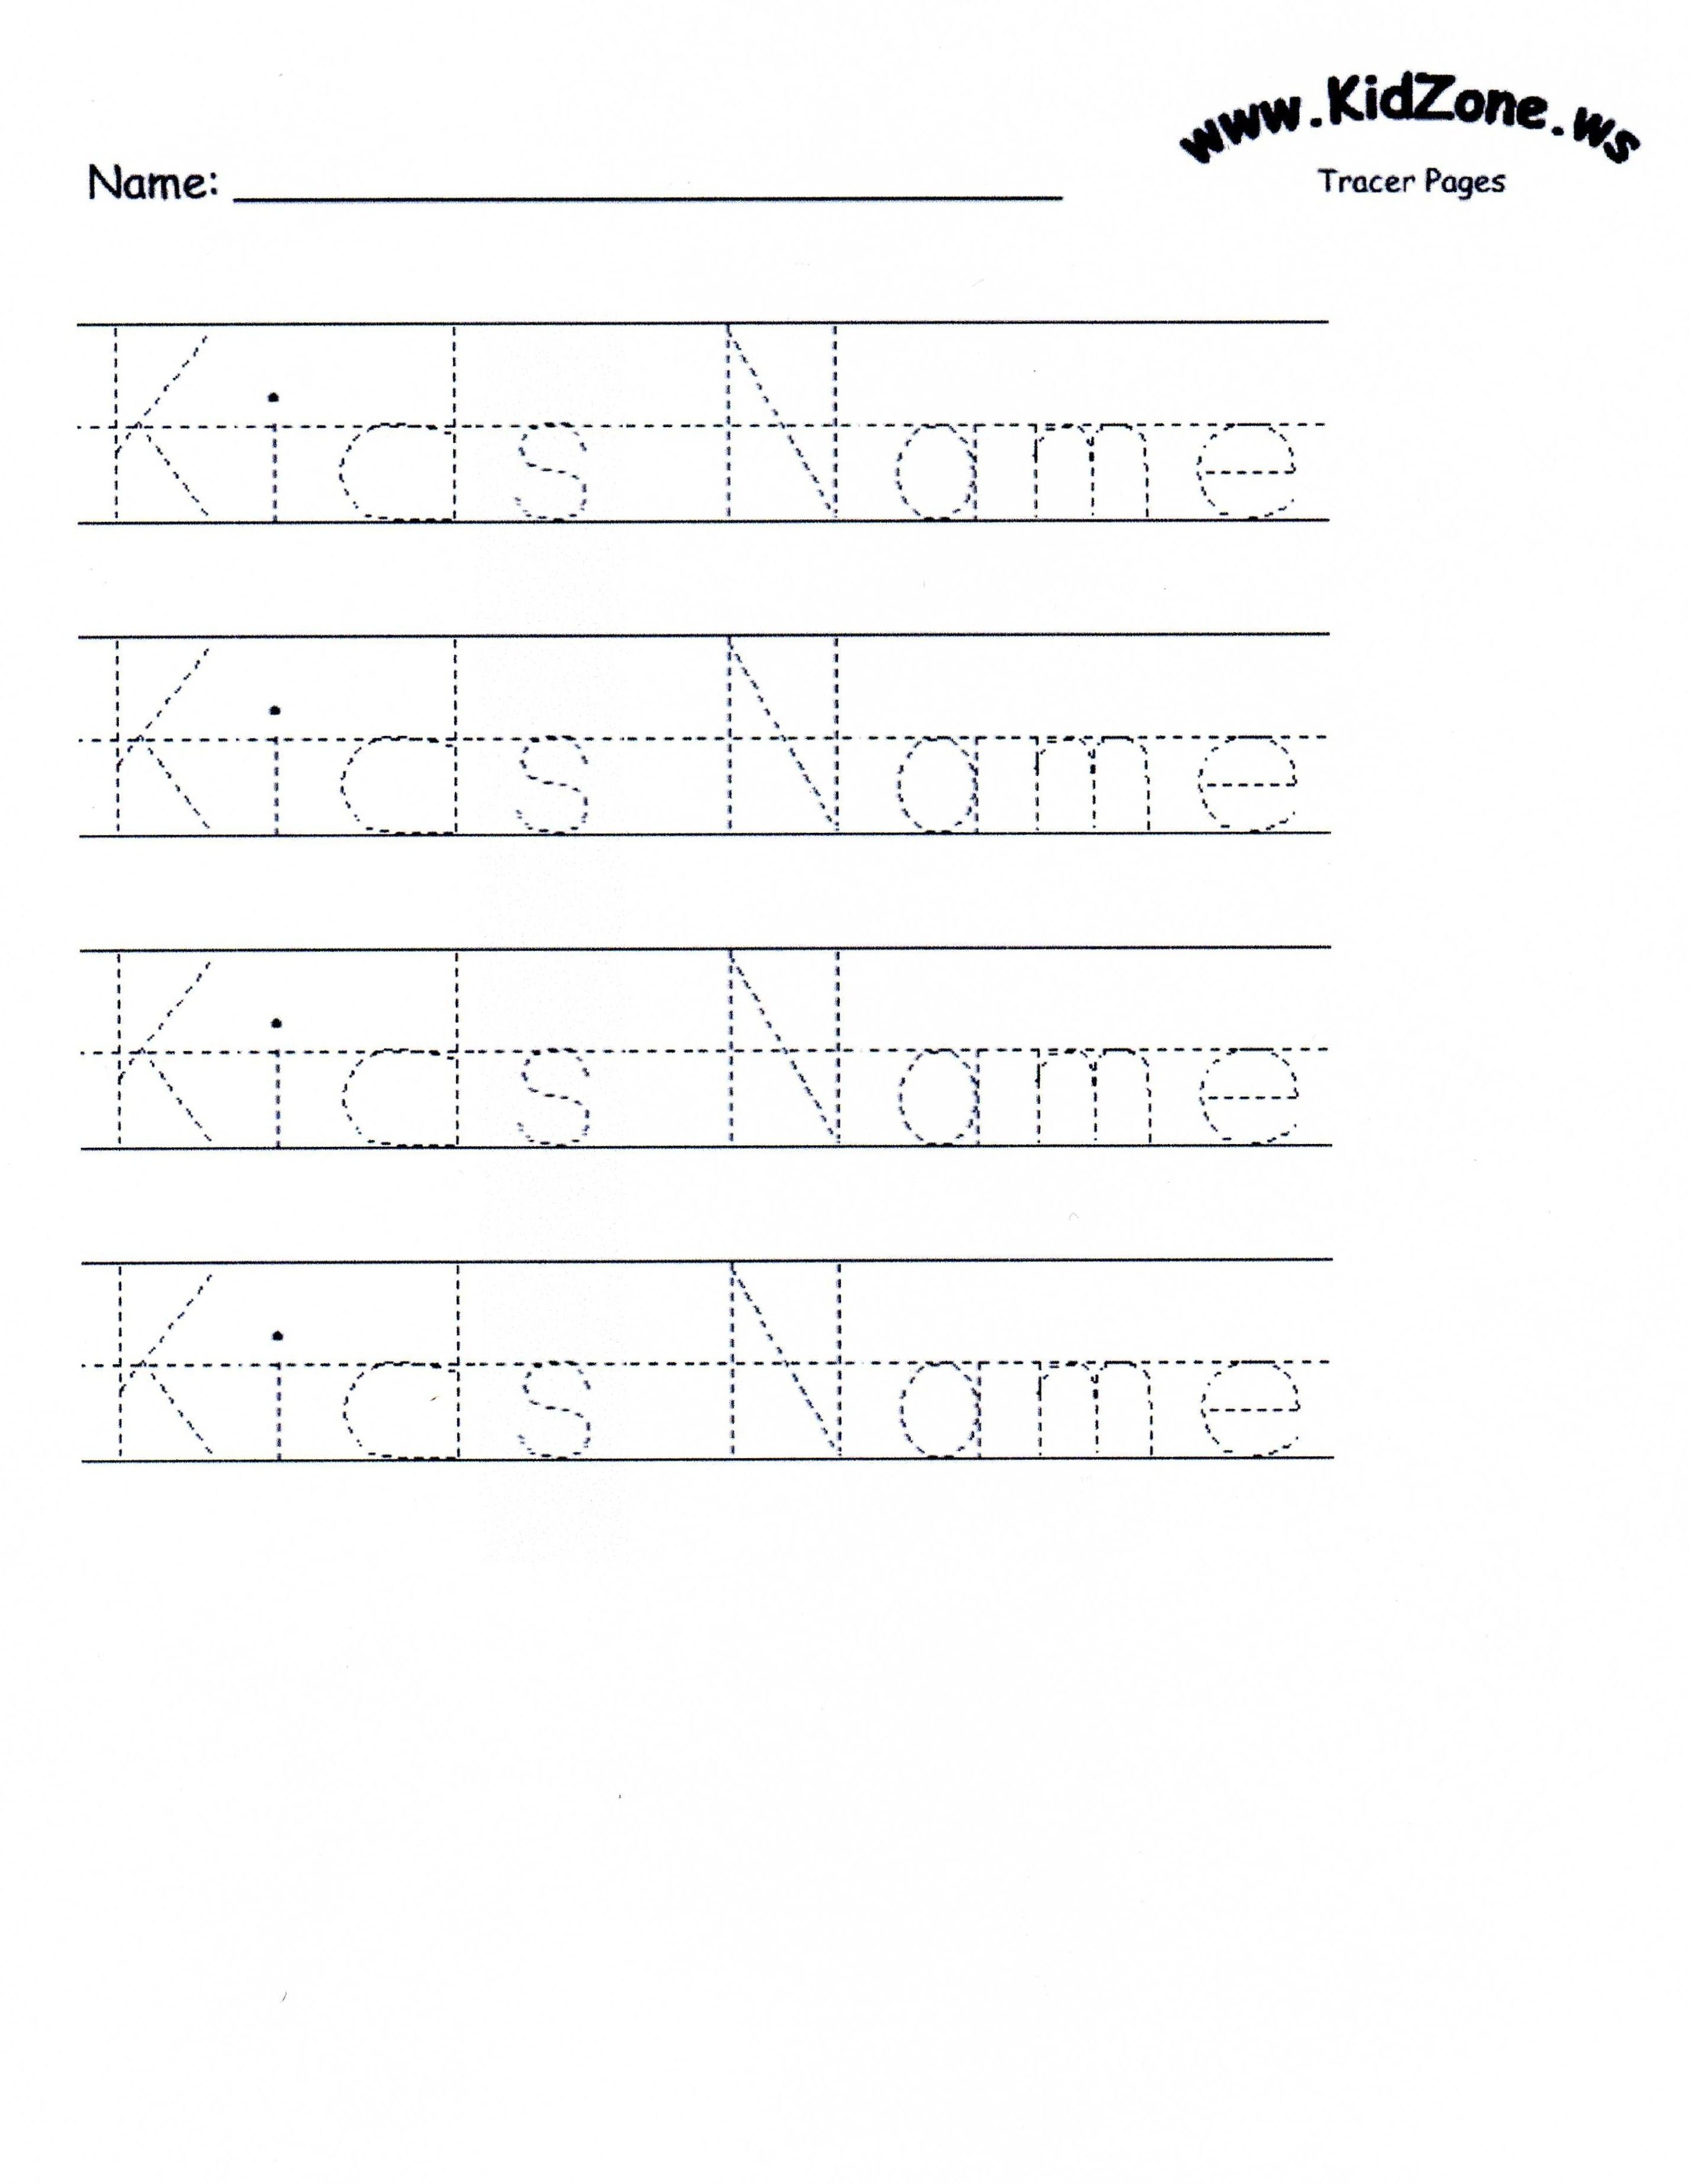 Customizable Printable Letter Pages | Teaching Mackenzie And Juliana - Free Printable Name Tracing Worksheets For Preschoolers